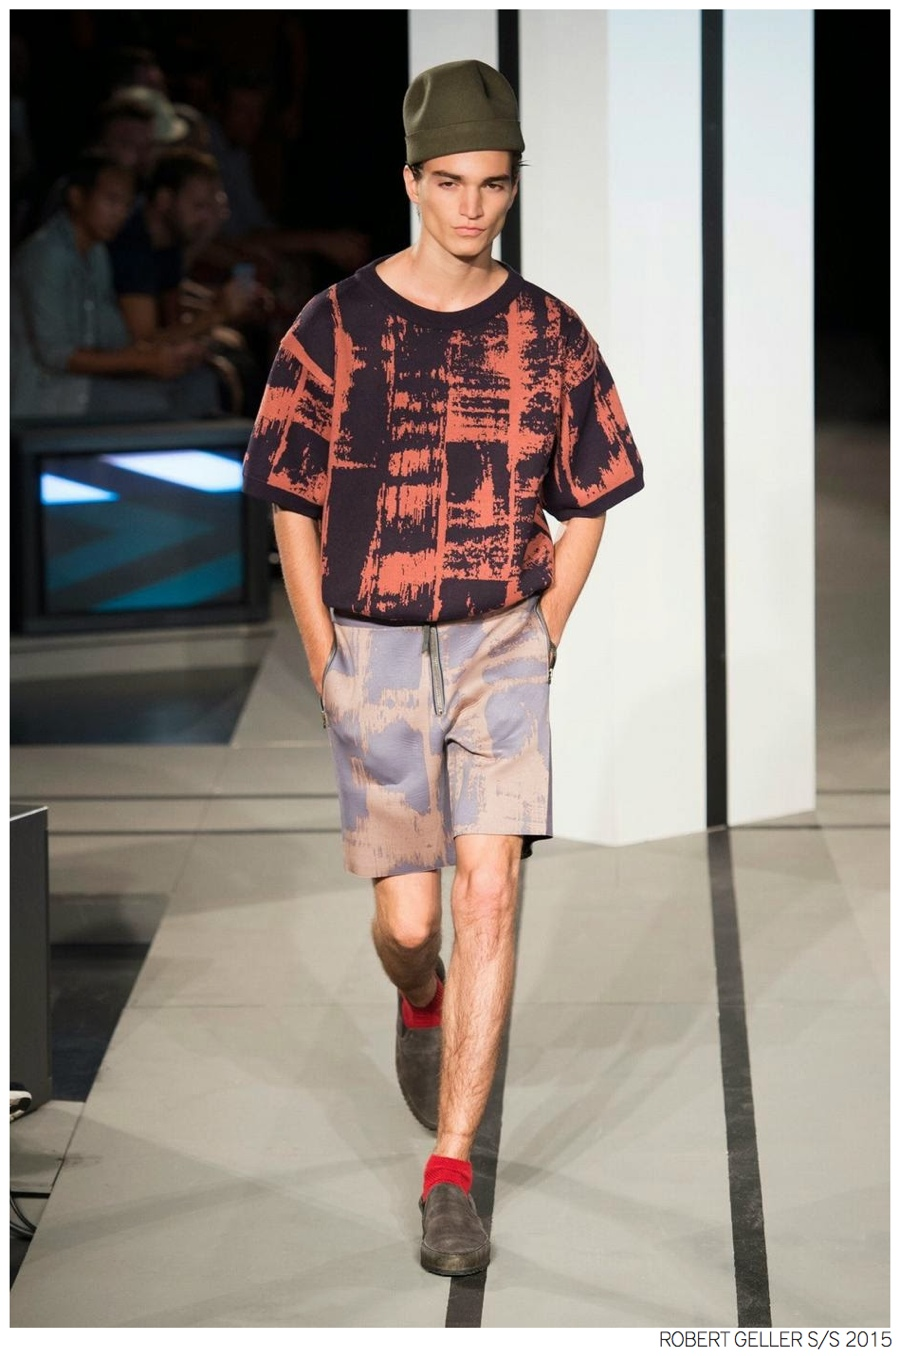 Robert Geller Spring/Summer 2015 Collection